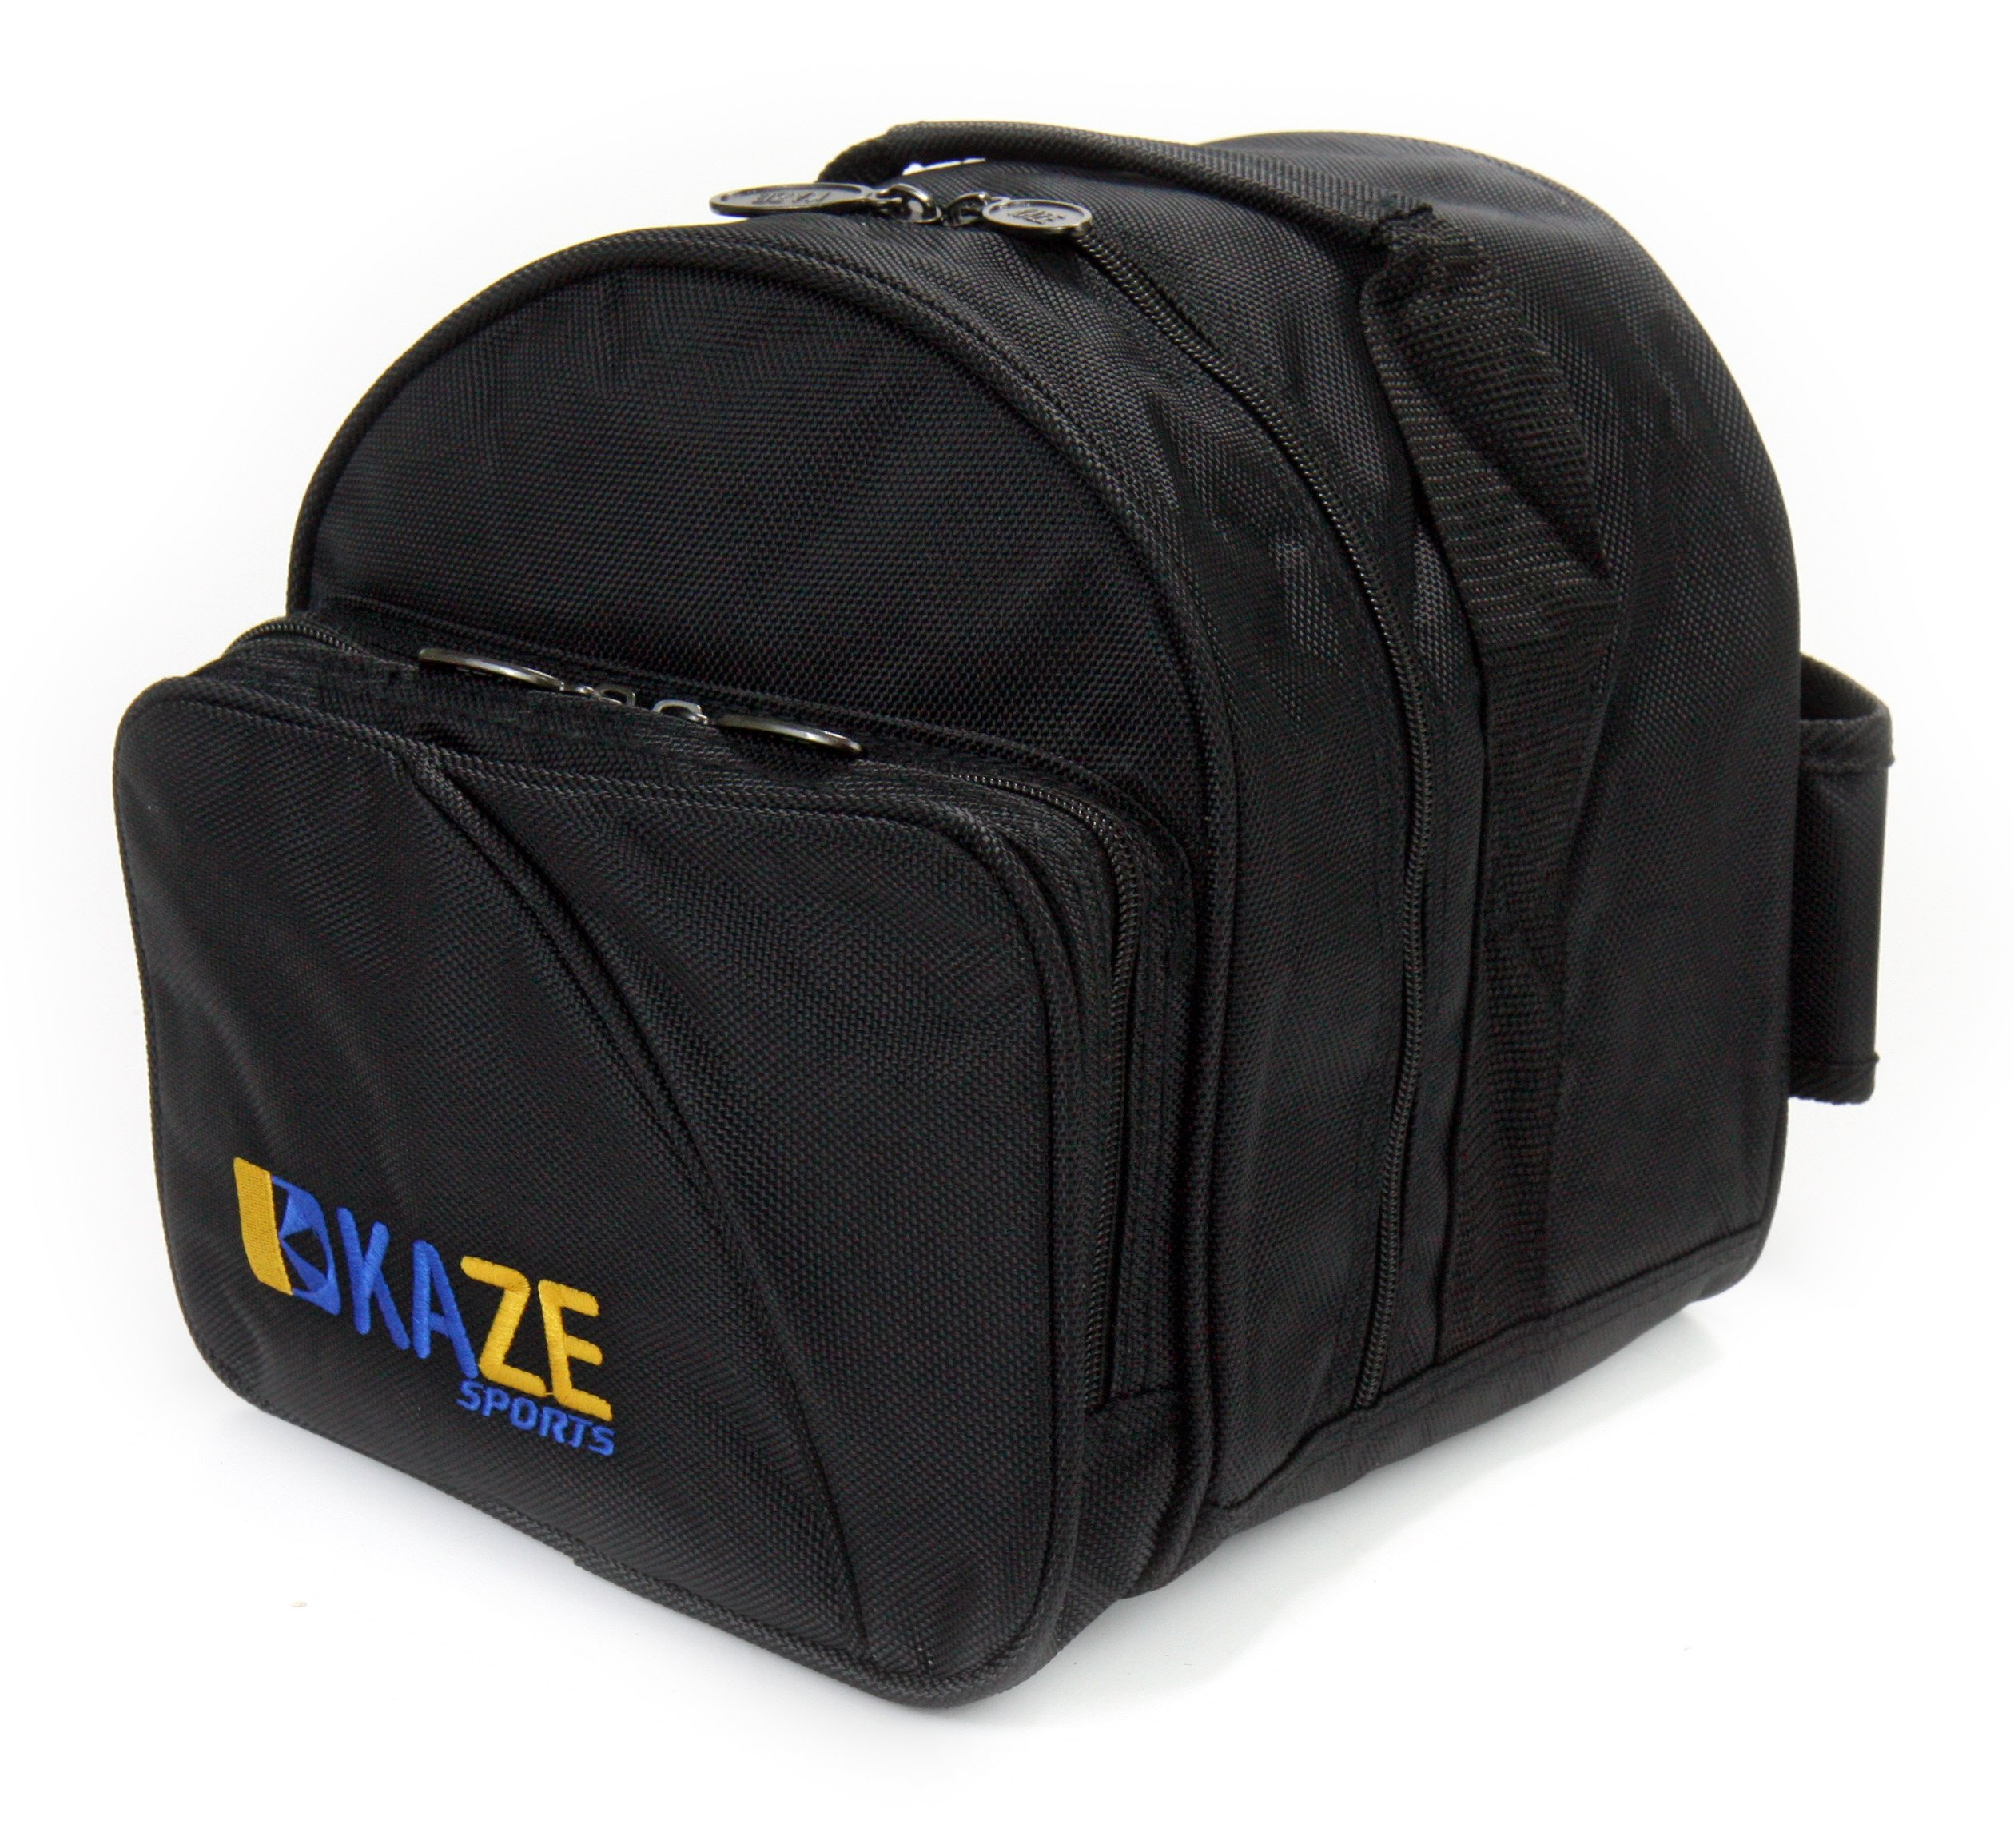 KAZE SPORTS 1 Ball Spare Kit Single Tote Bowling Add On Bag (Black) by KAZE SPORTS